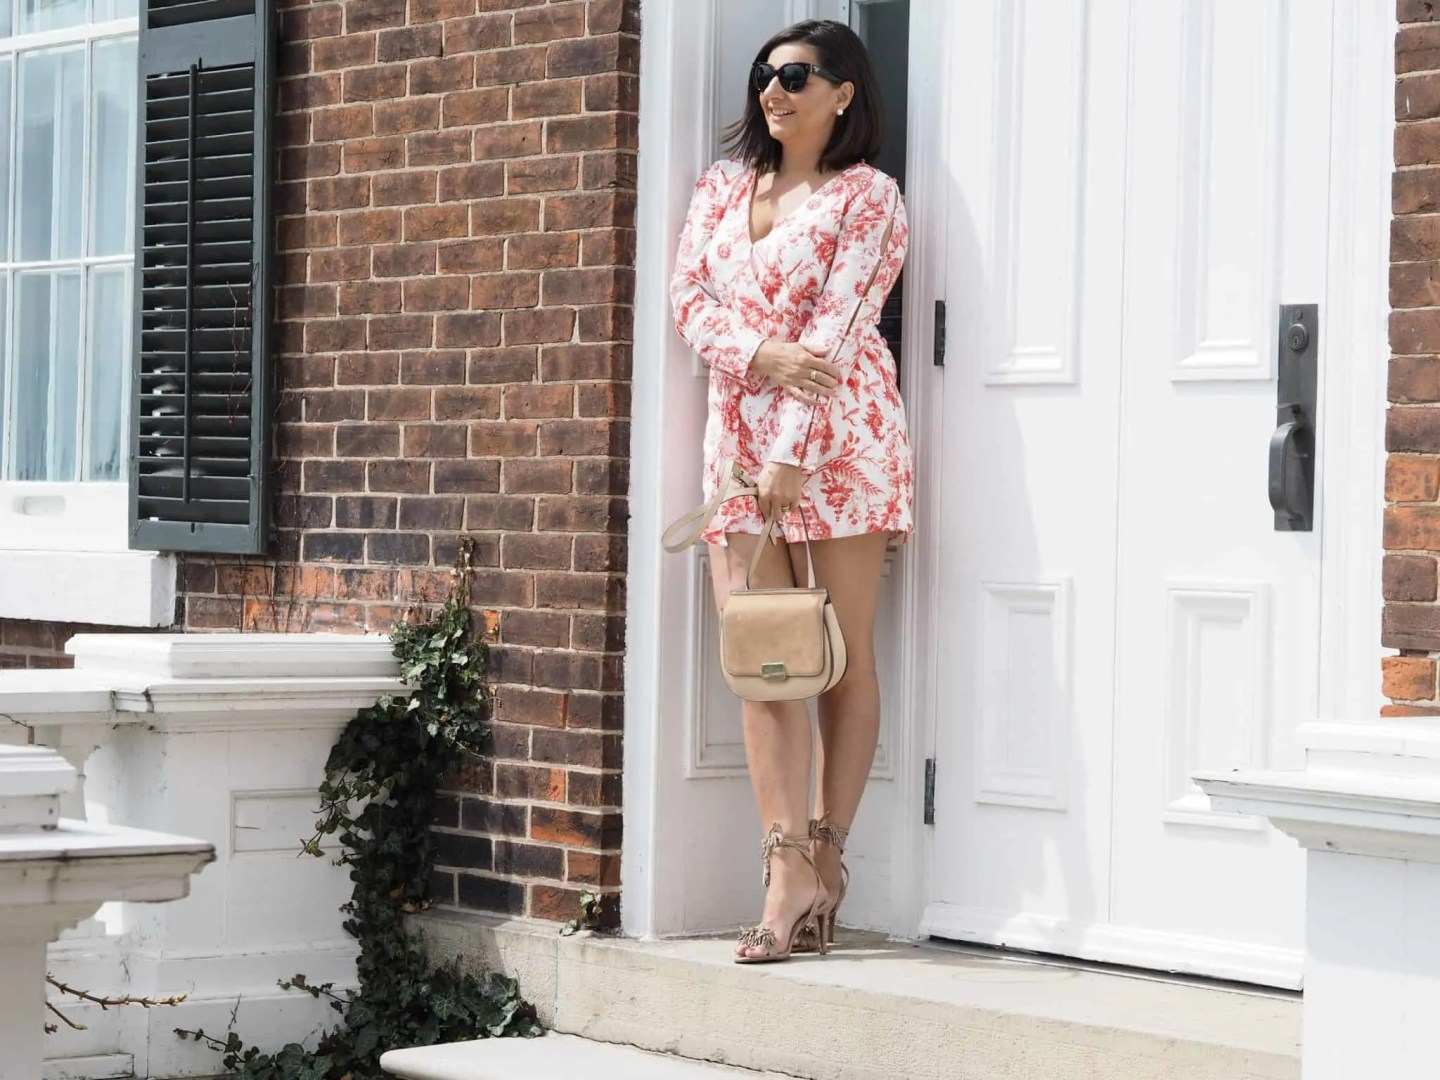 The Must Have Romper and Sandals For Spring